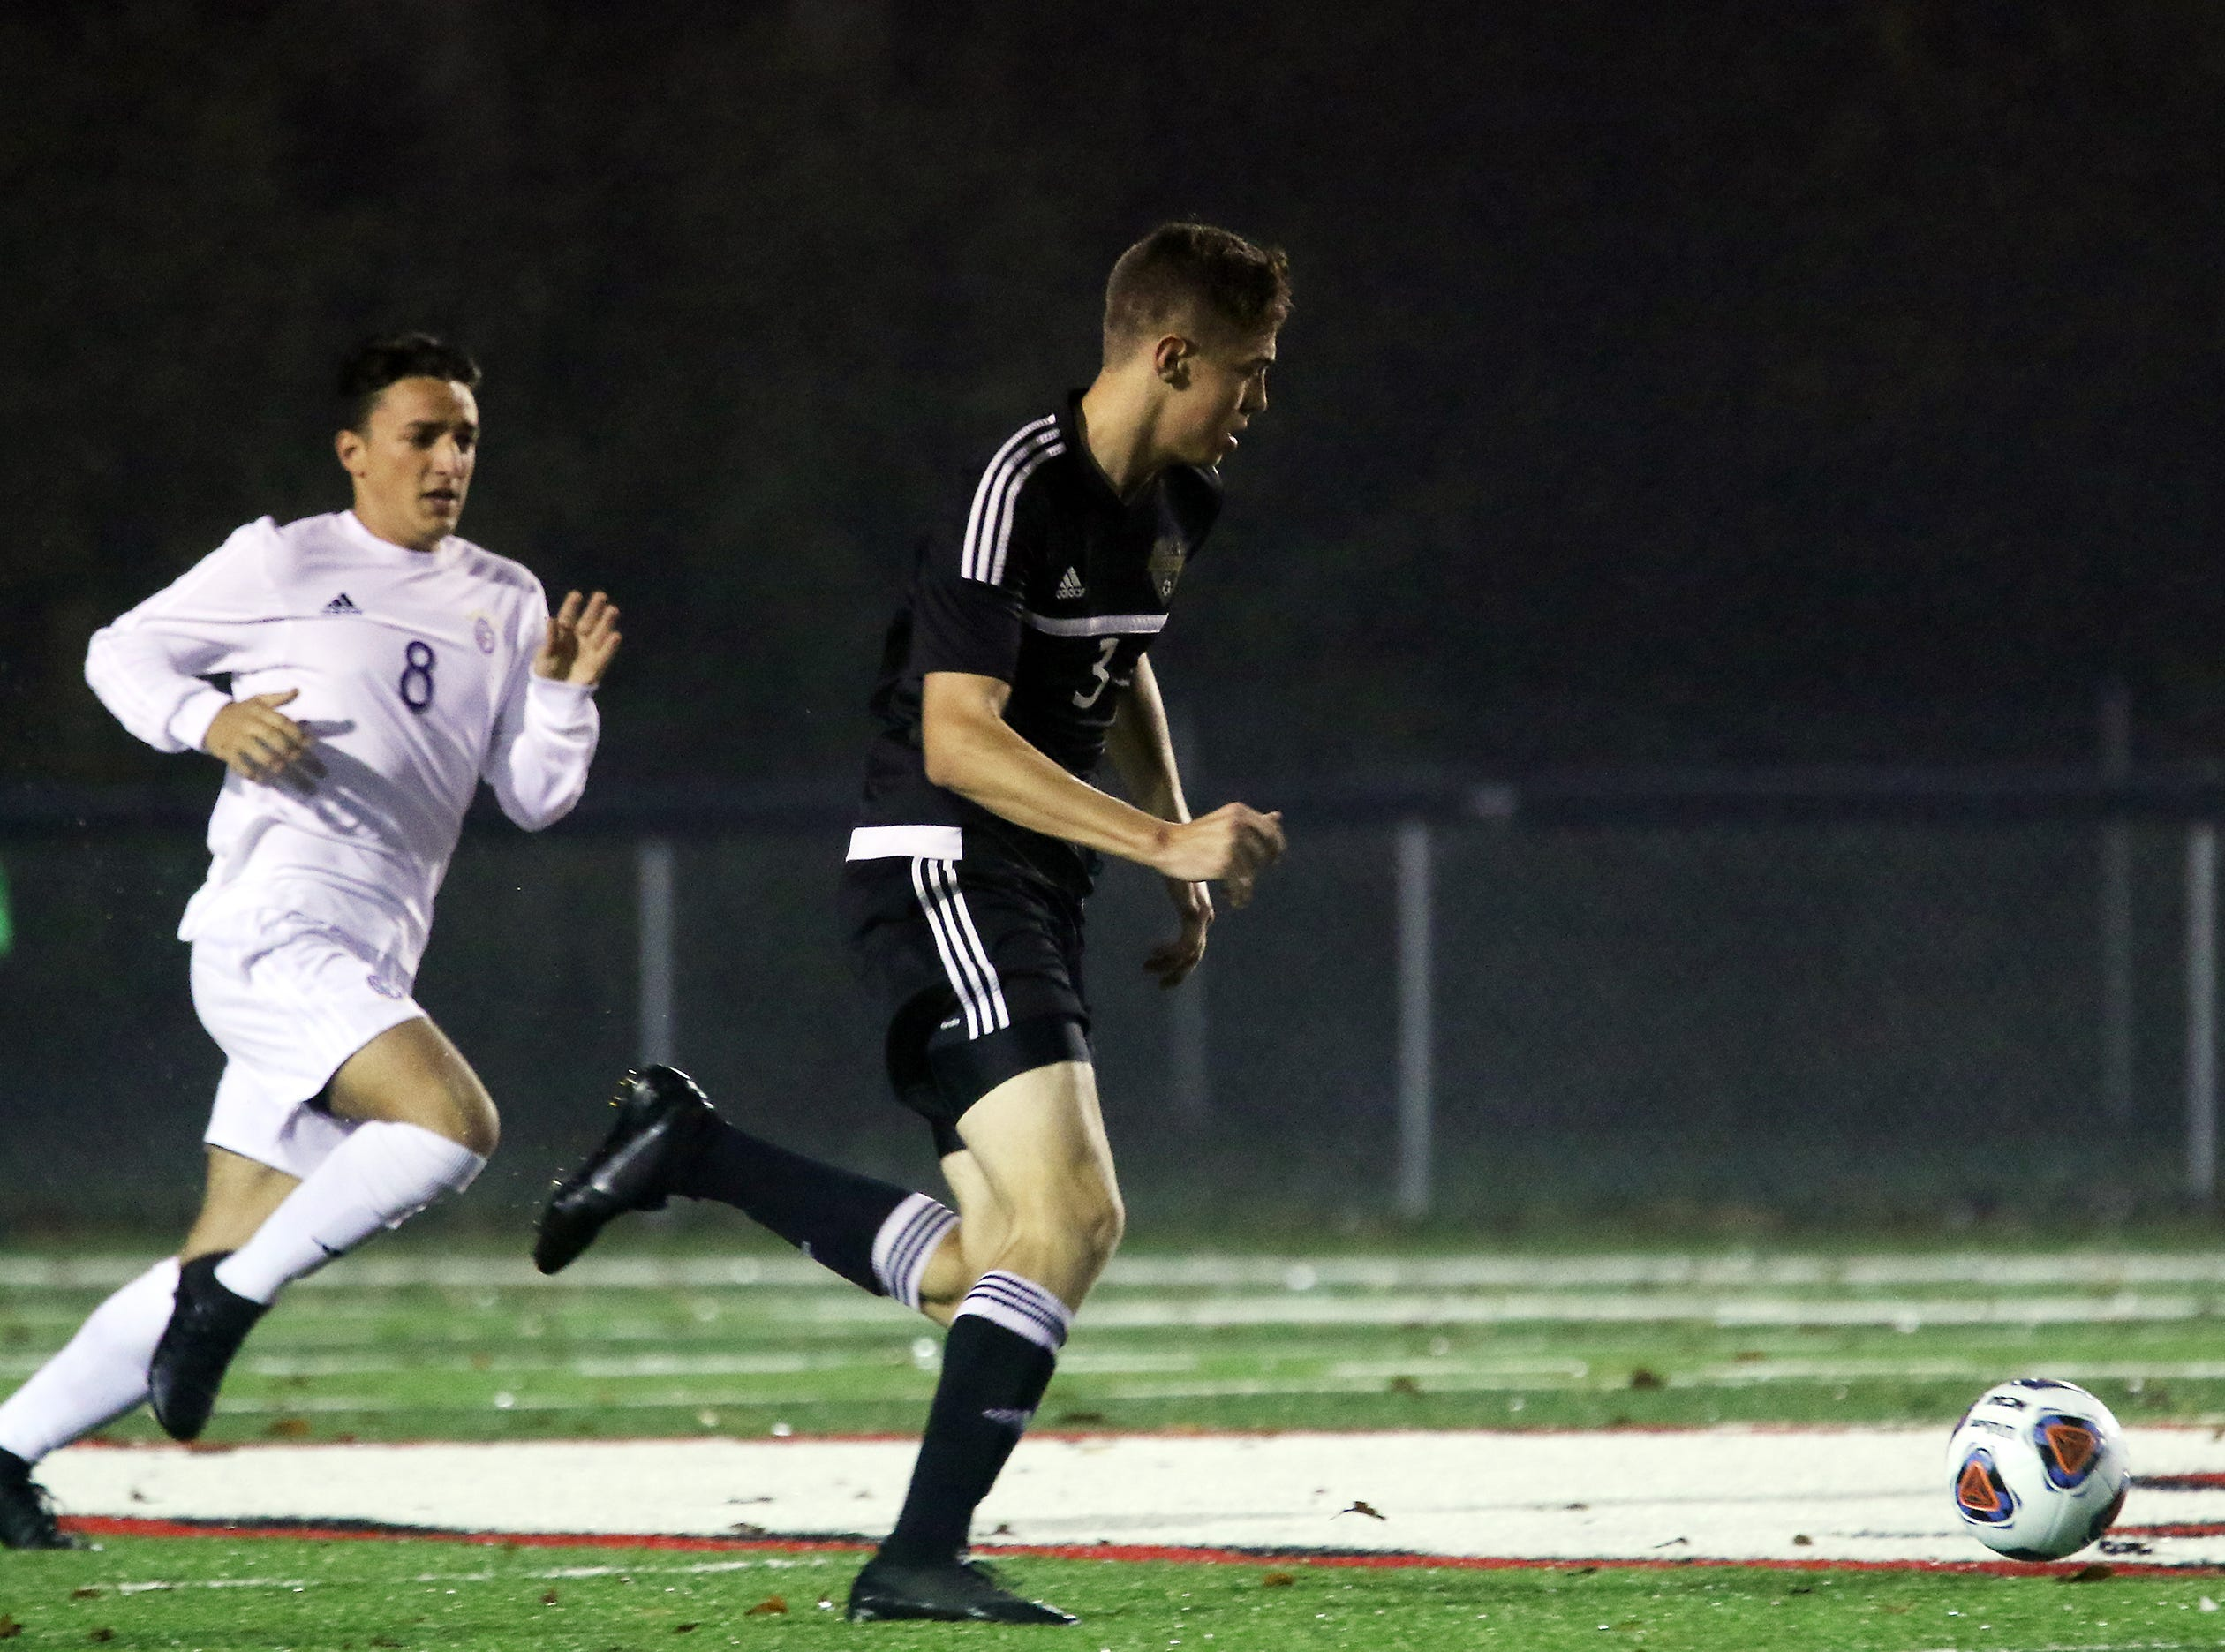 River View's Nathan Bullock moves with the ball against DeSales.